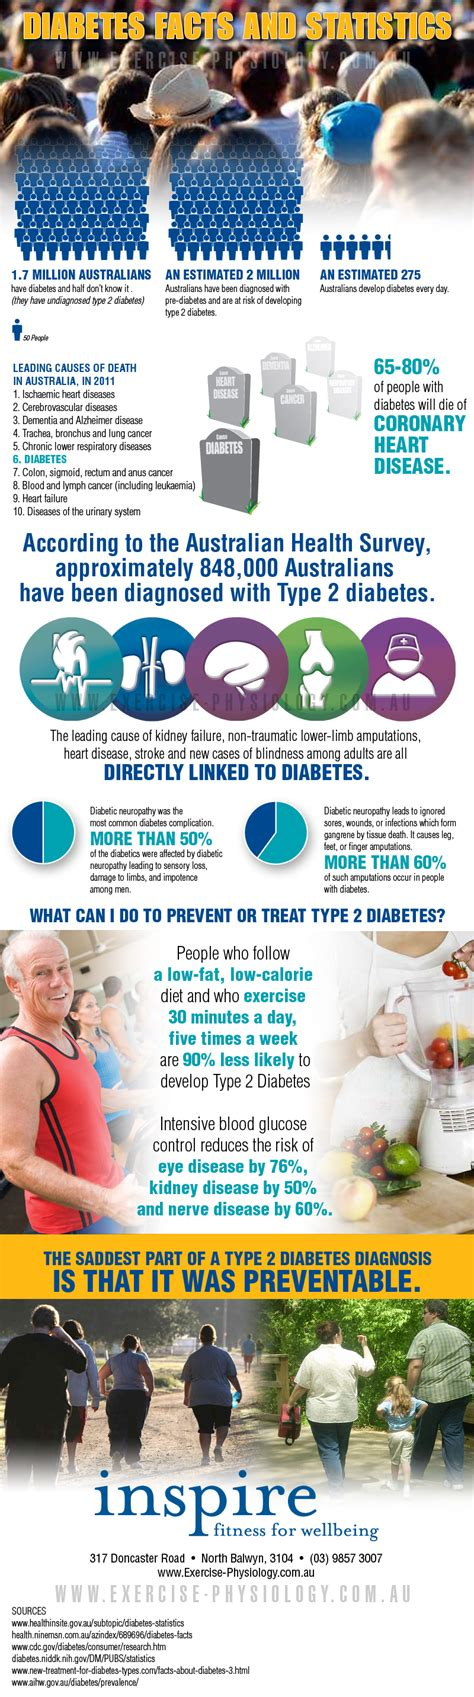 diabetes facts and statistics infographic inspire fitness